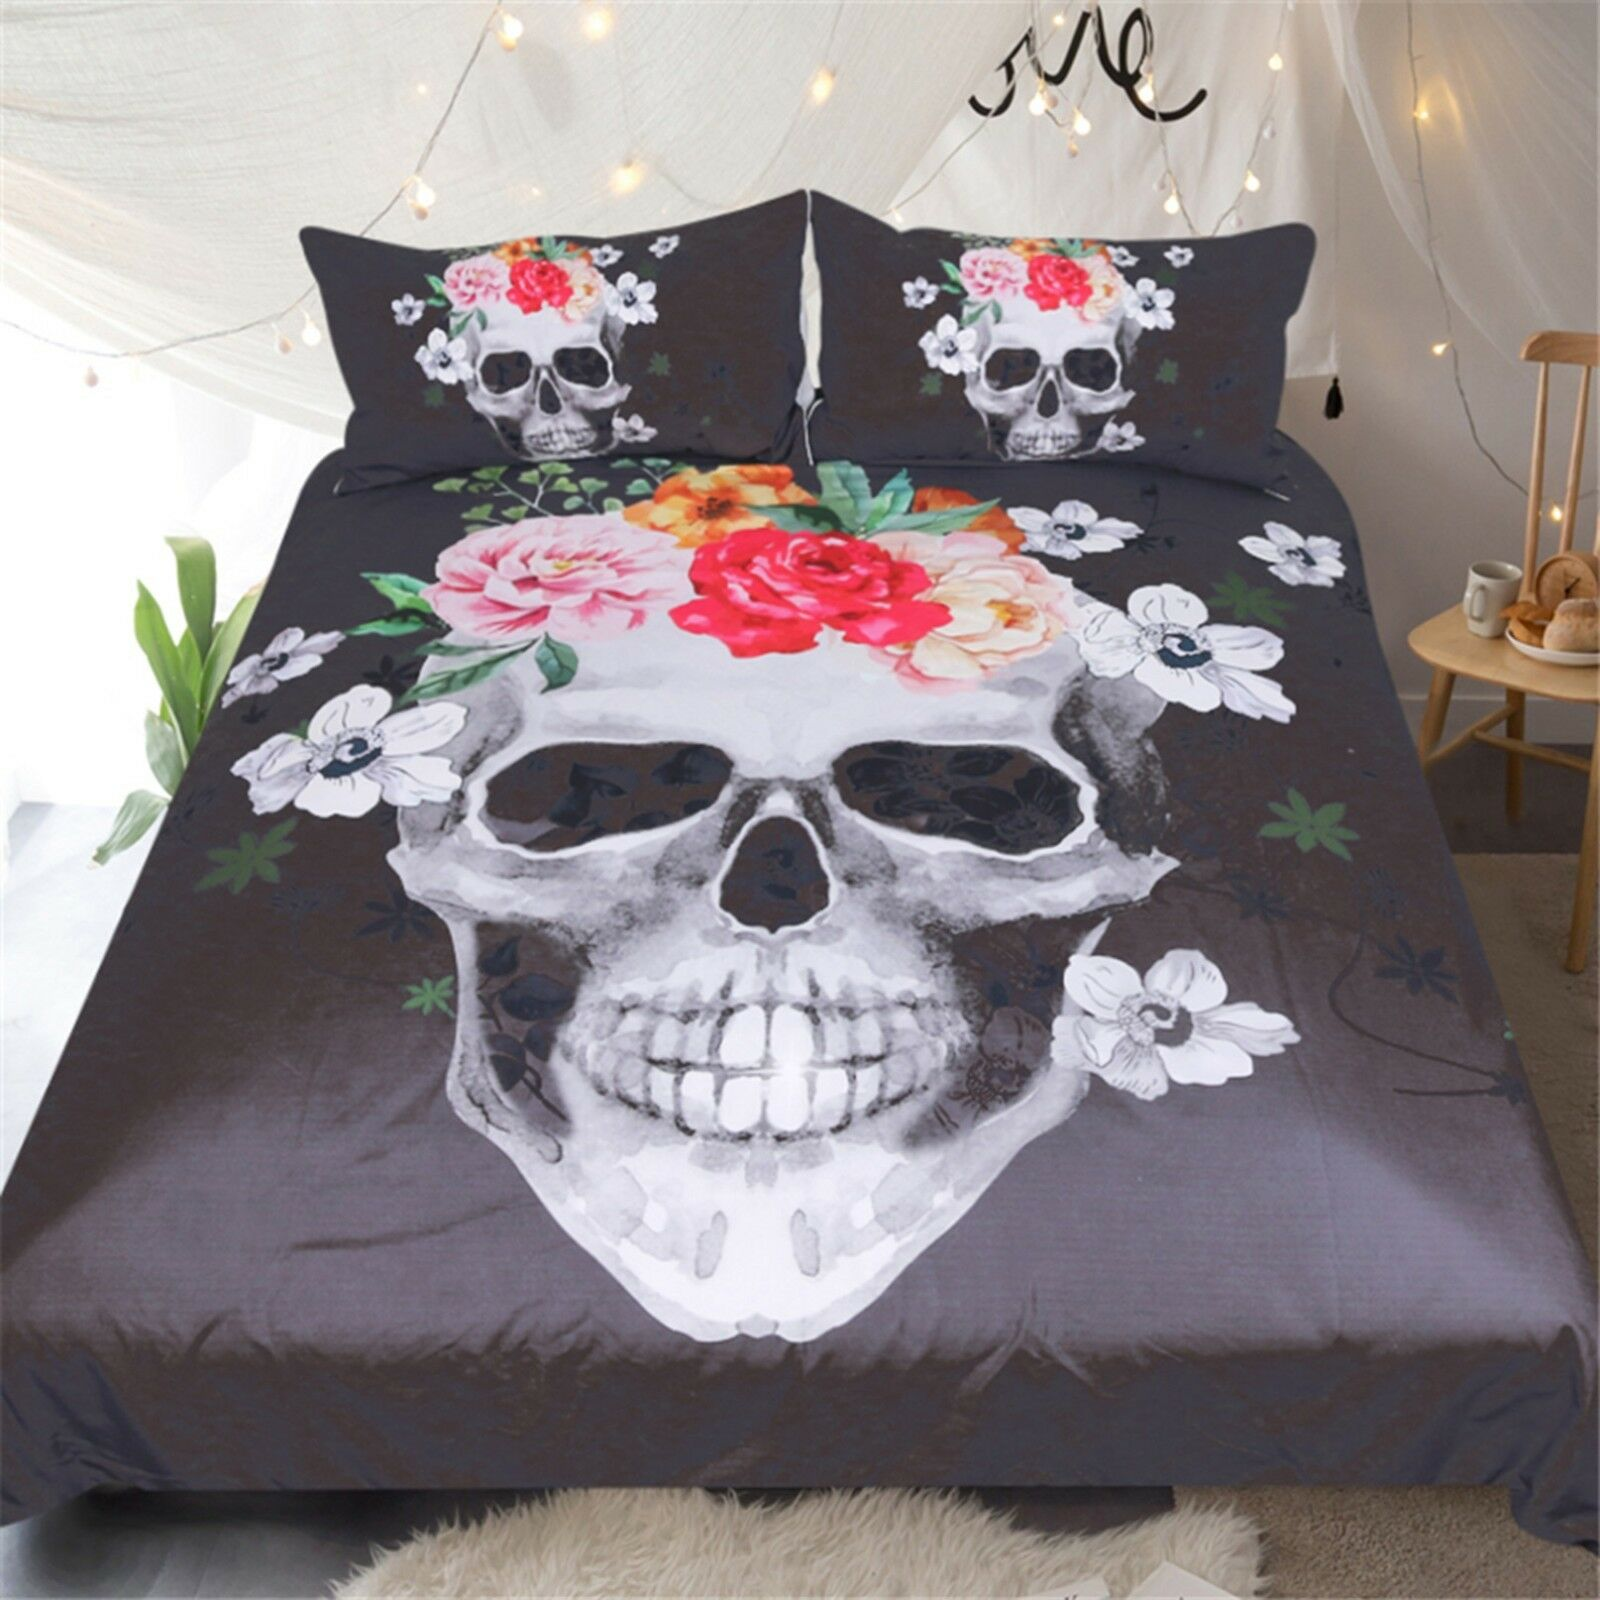 3D Skeleton Flower 482 Bed Pillowcases Quilt Duvet Cover Set Single Queen CA